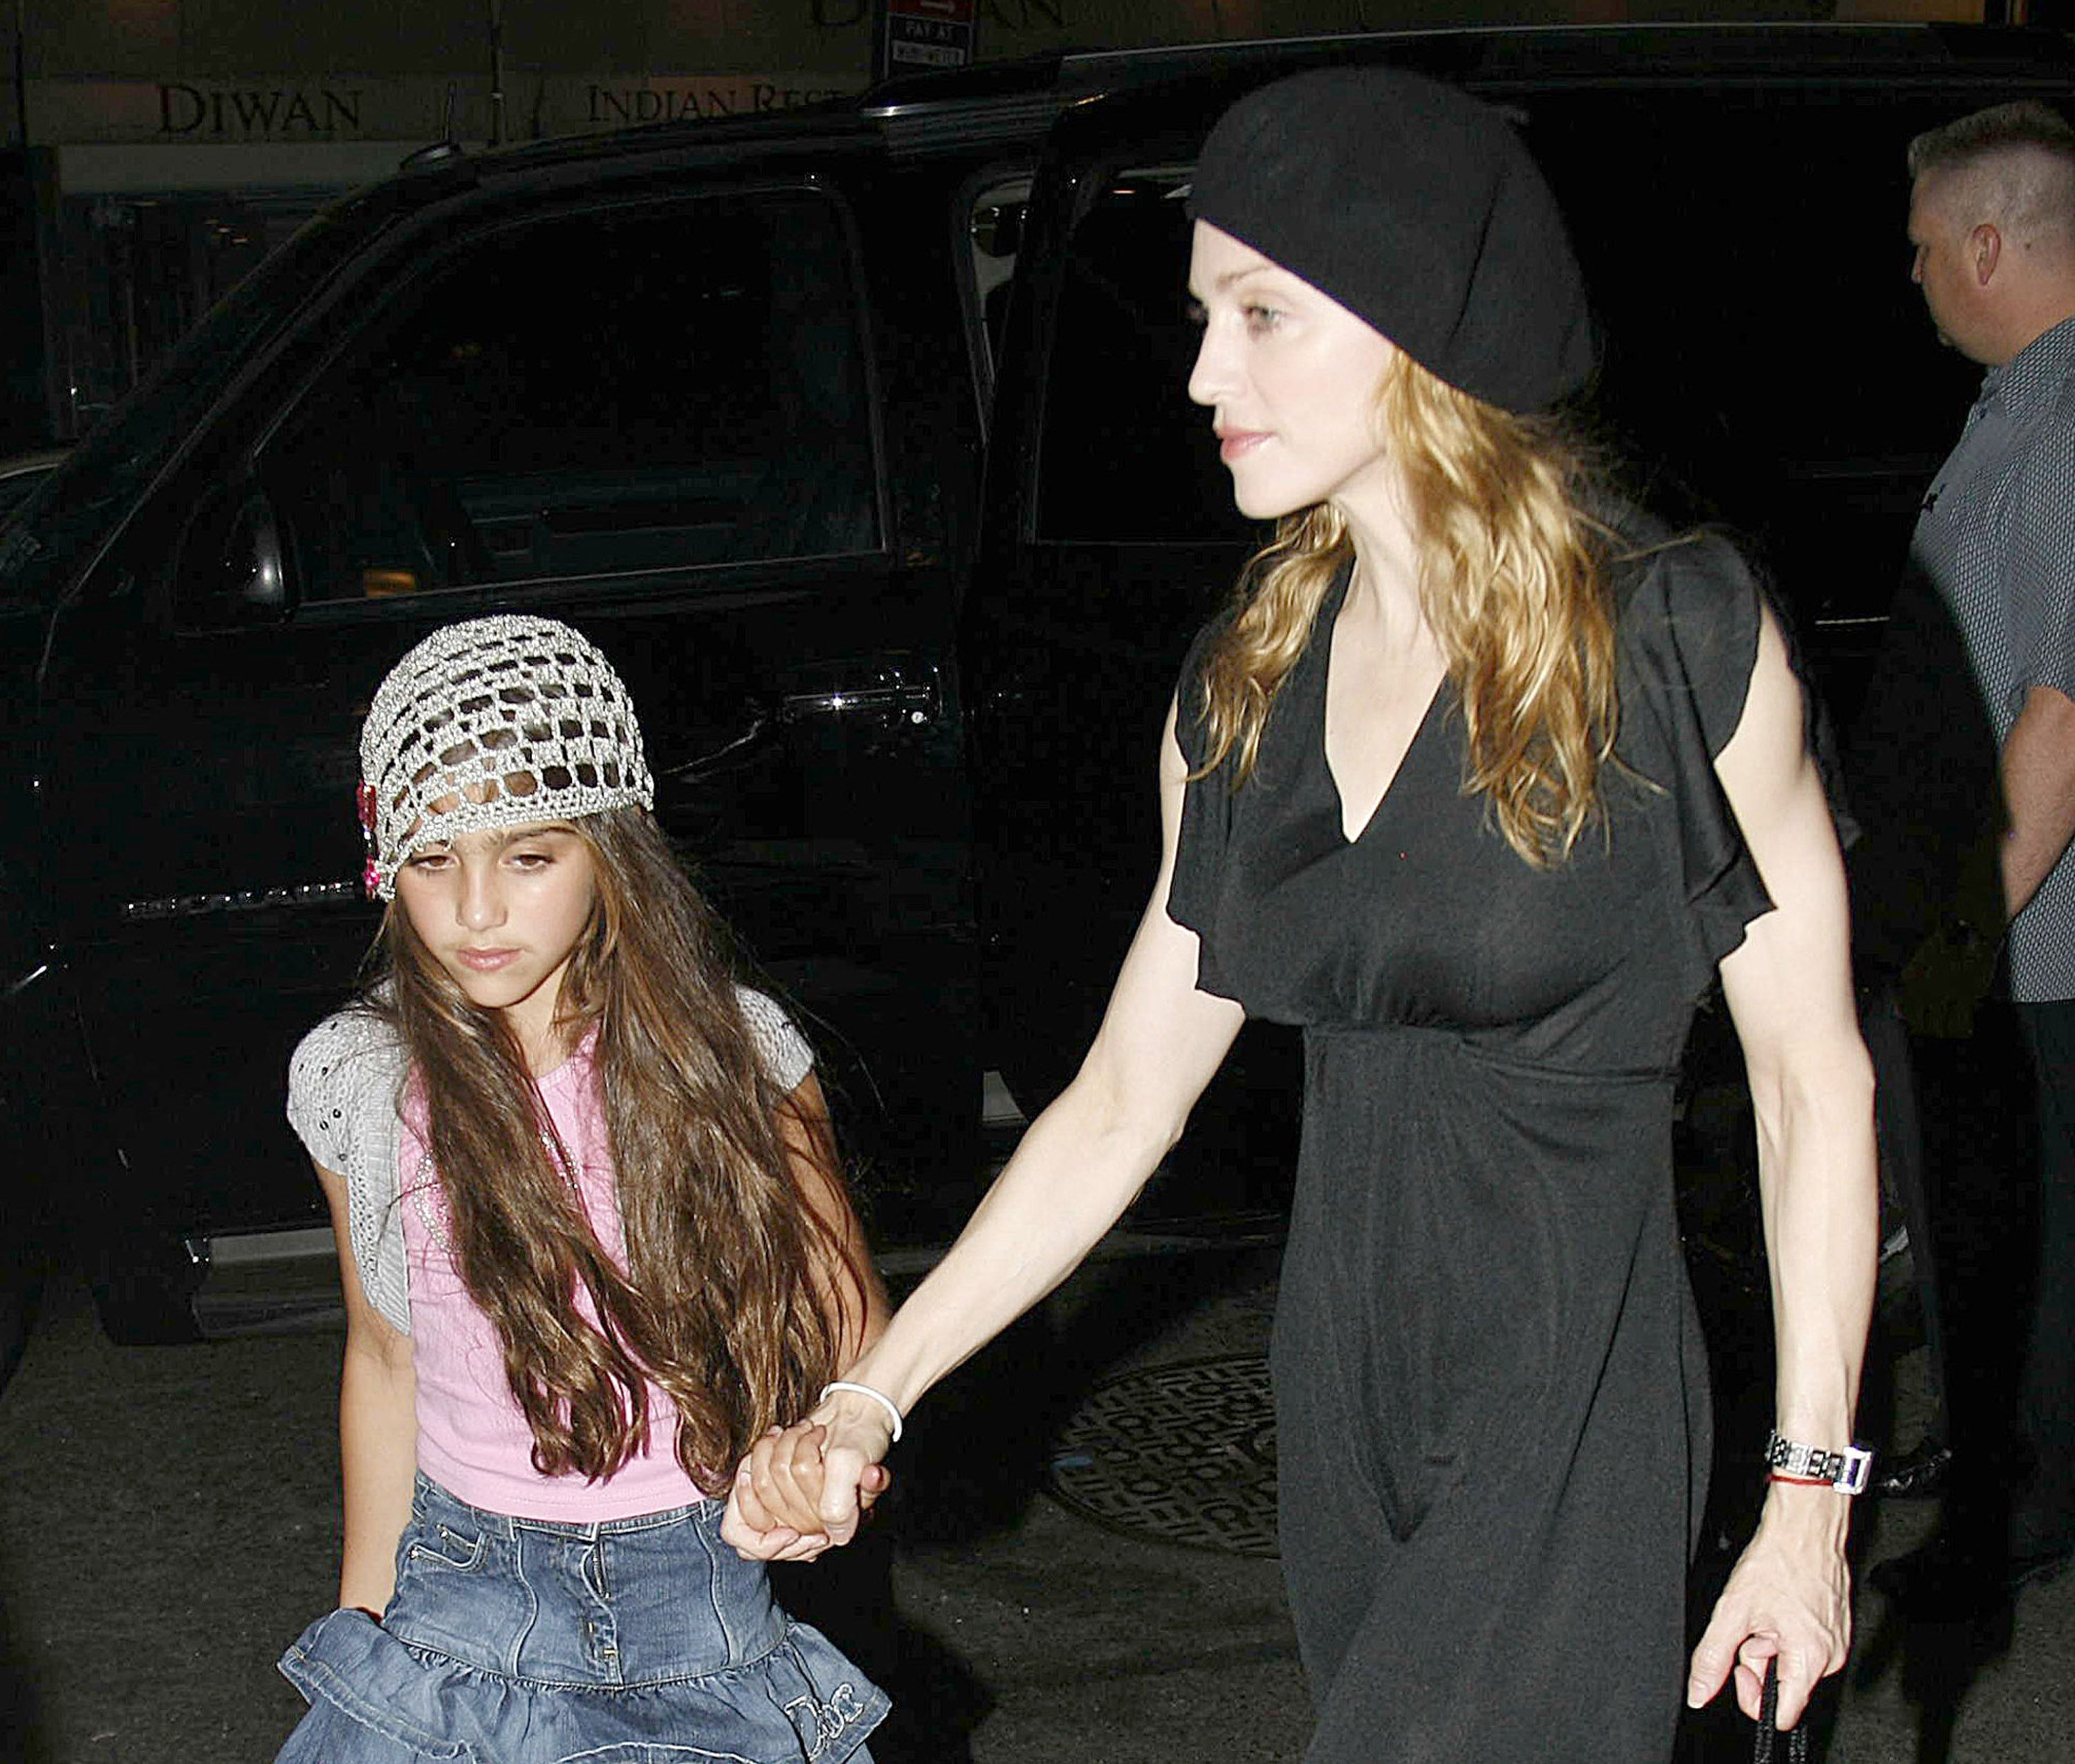 madonna and daughter lourdes leon during madonna sighting in new york city   june 23, 2006 at kabbalah center in new york city, new york, united states photo by marcel thomasfilmmagic